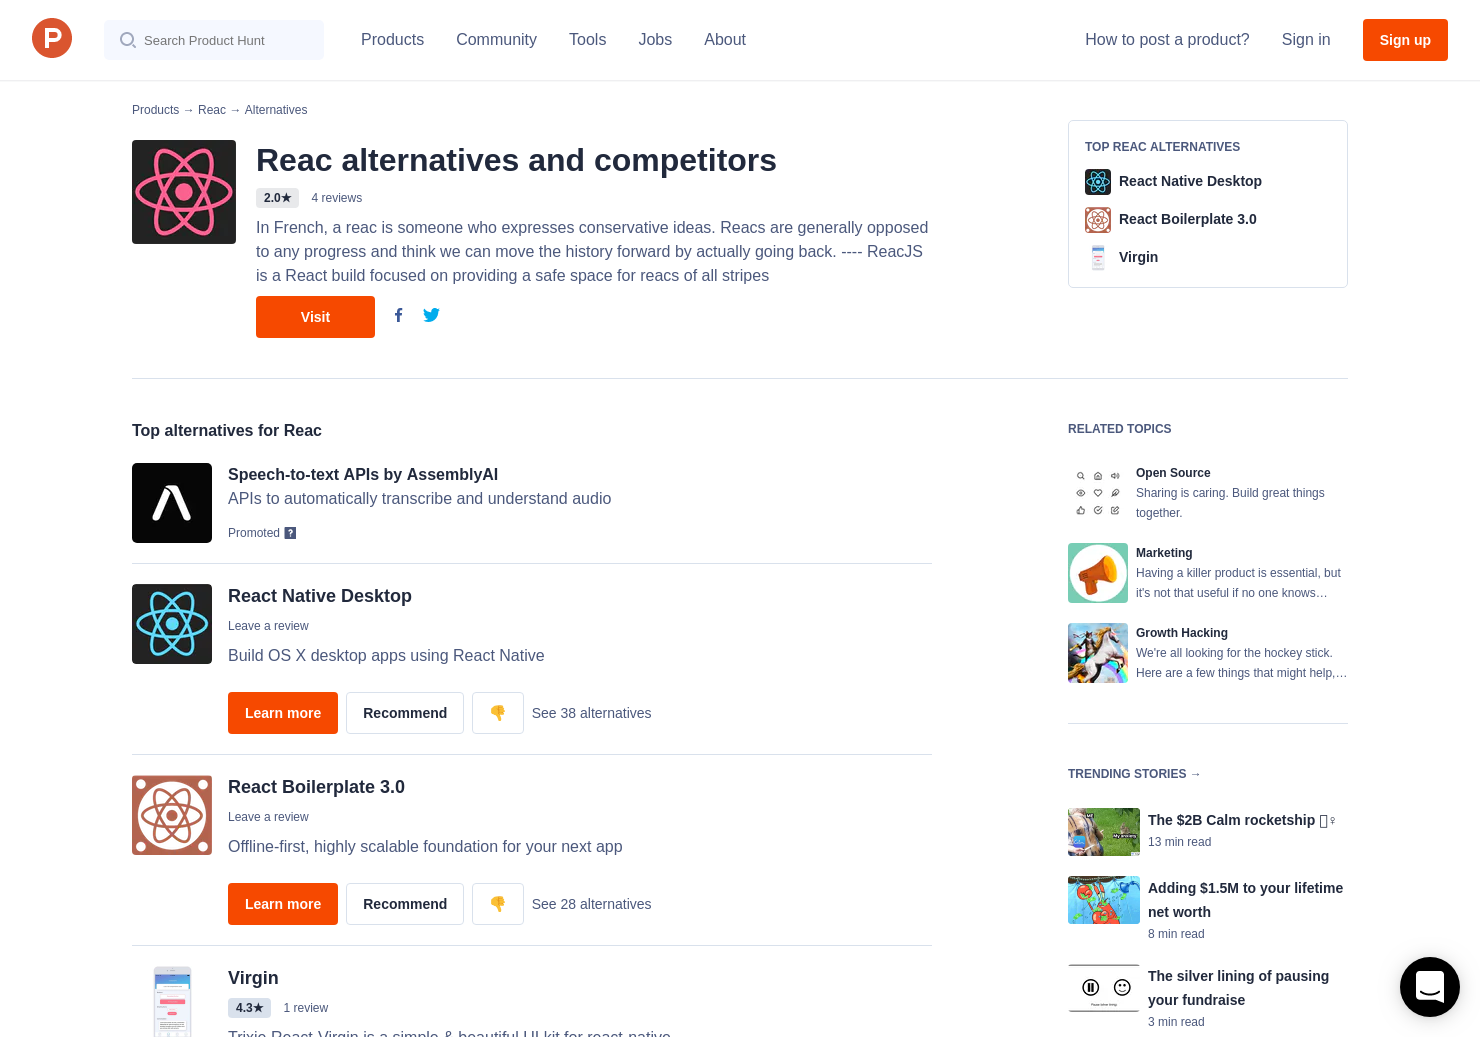 10 Alternatives to Reac | Product Hunt